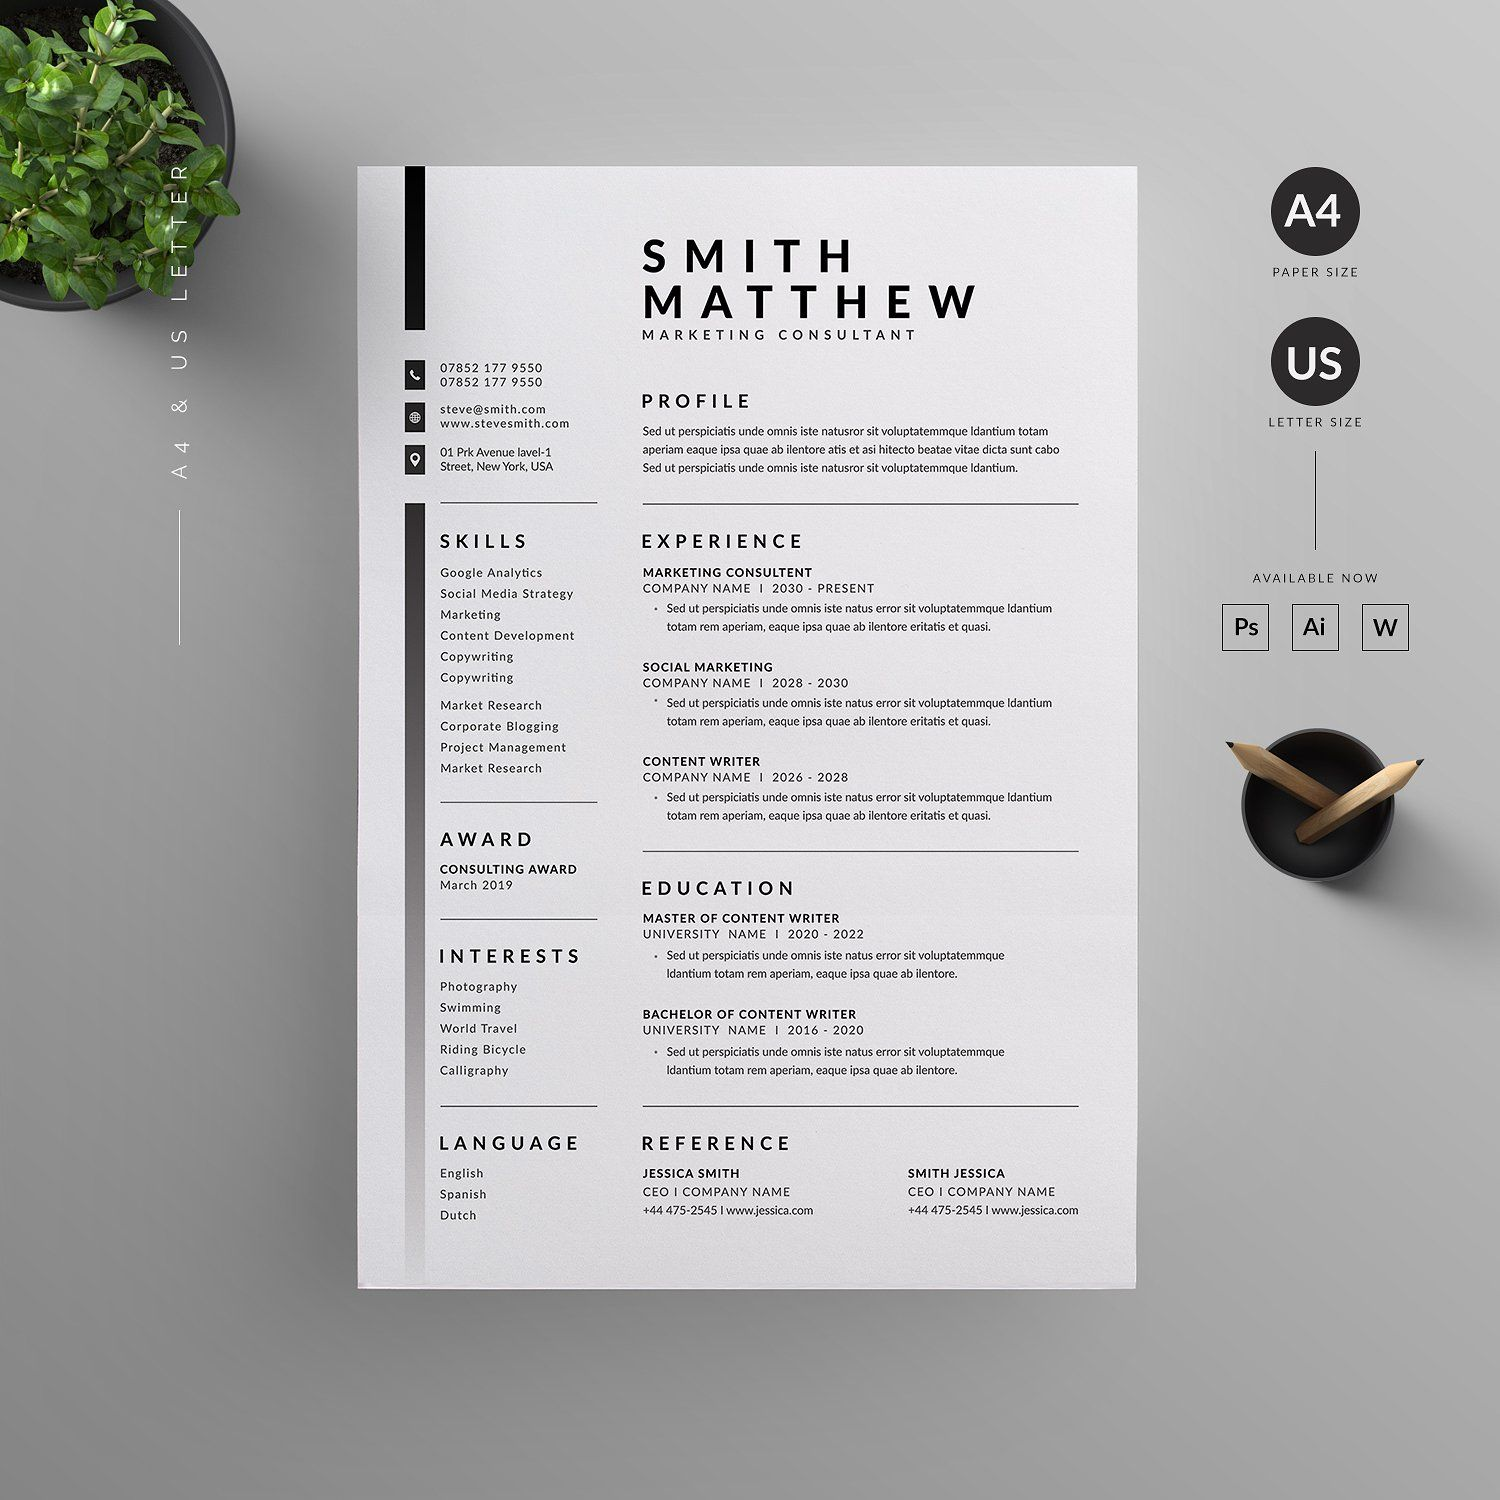 resume cv design template creative graphic size google review experienced hair stylist Resume Graphic Design Resume Size